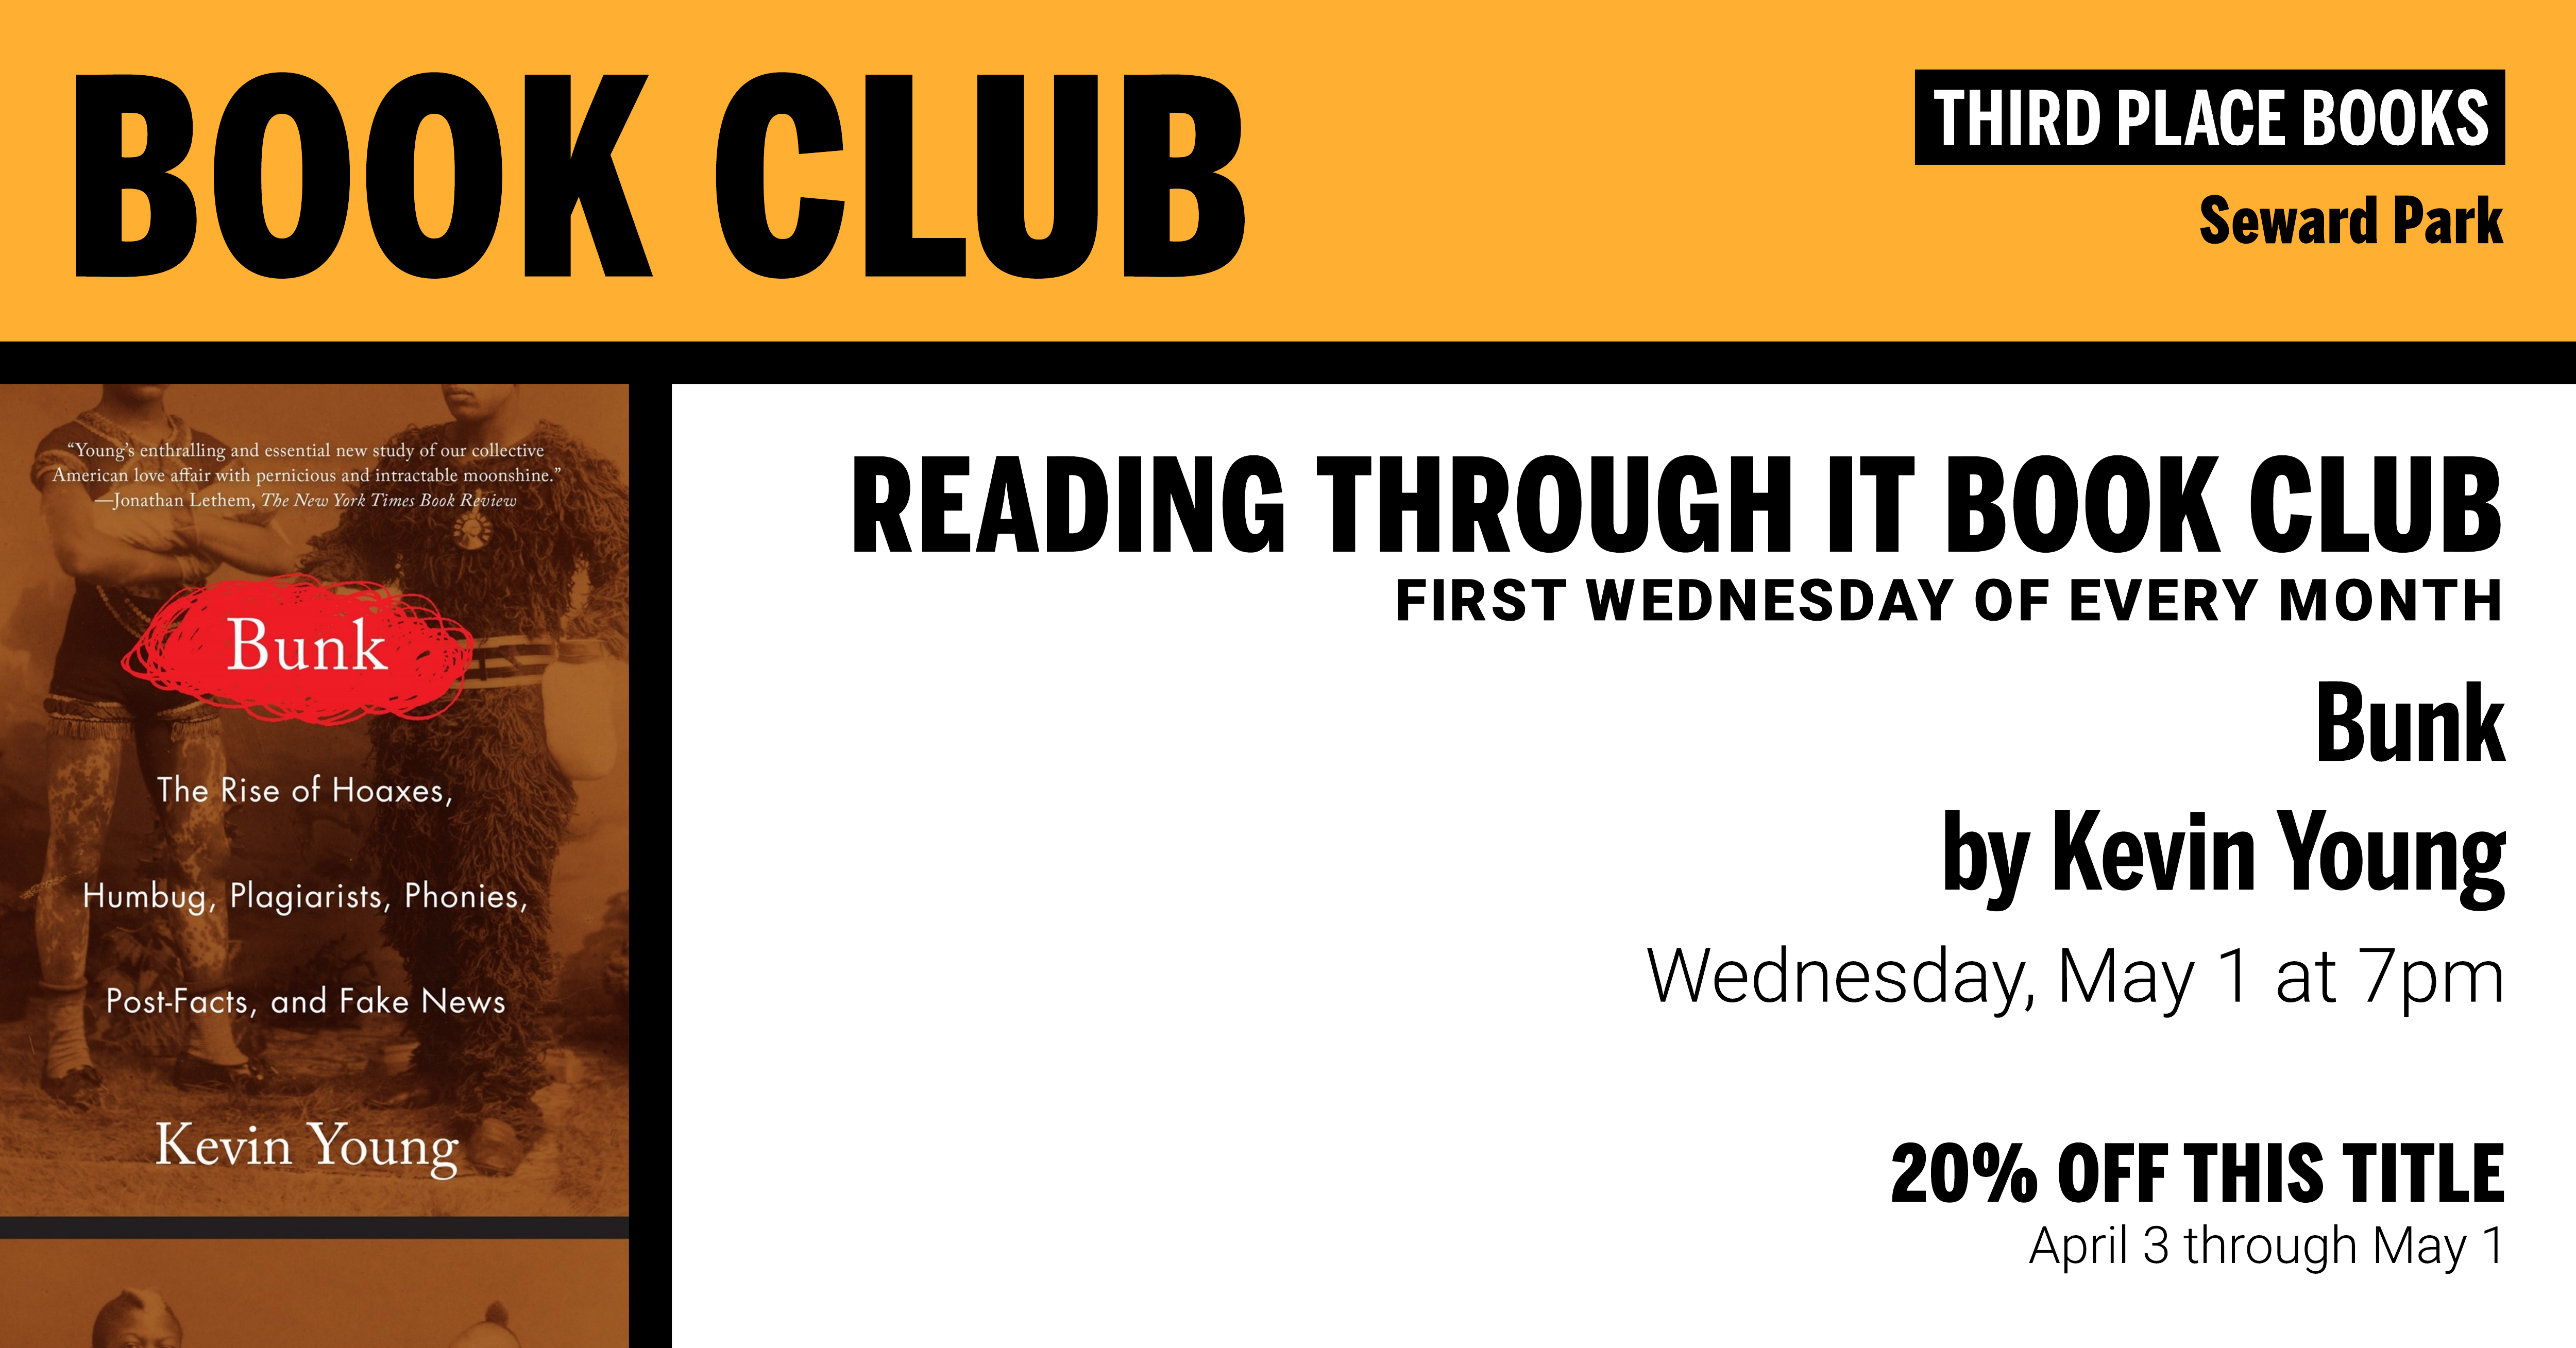 Reading Through It Book Club discussing Bunk by Kevin Young on Wednesday, May 1 at 7pm